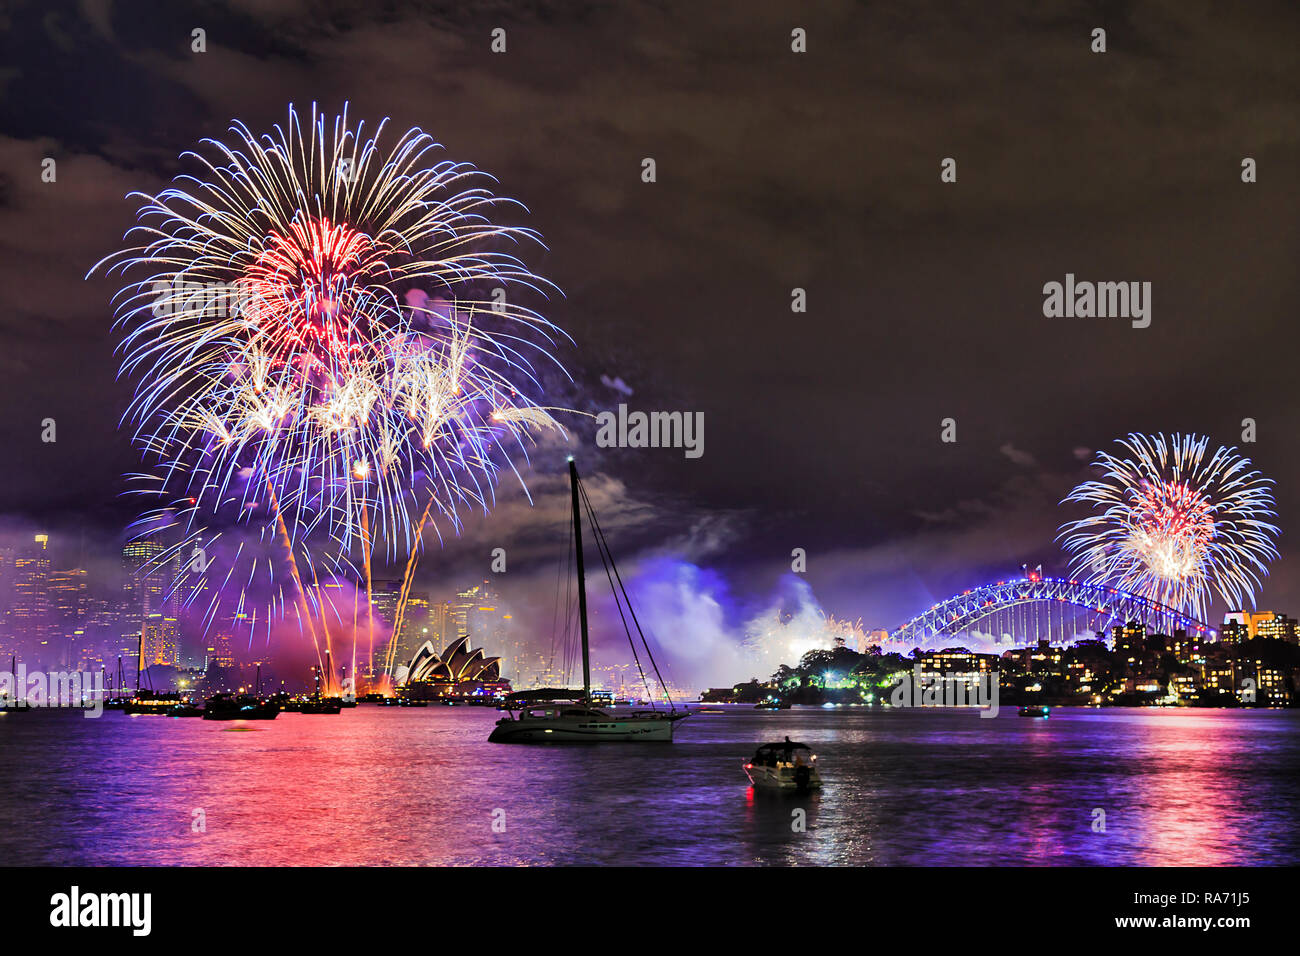 Bright light balls of annual New Year fireworks in Sydney city over CBD landmarks and reflecting in waters of Sydney Harbour. - Stock Image